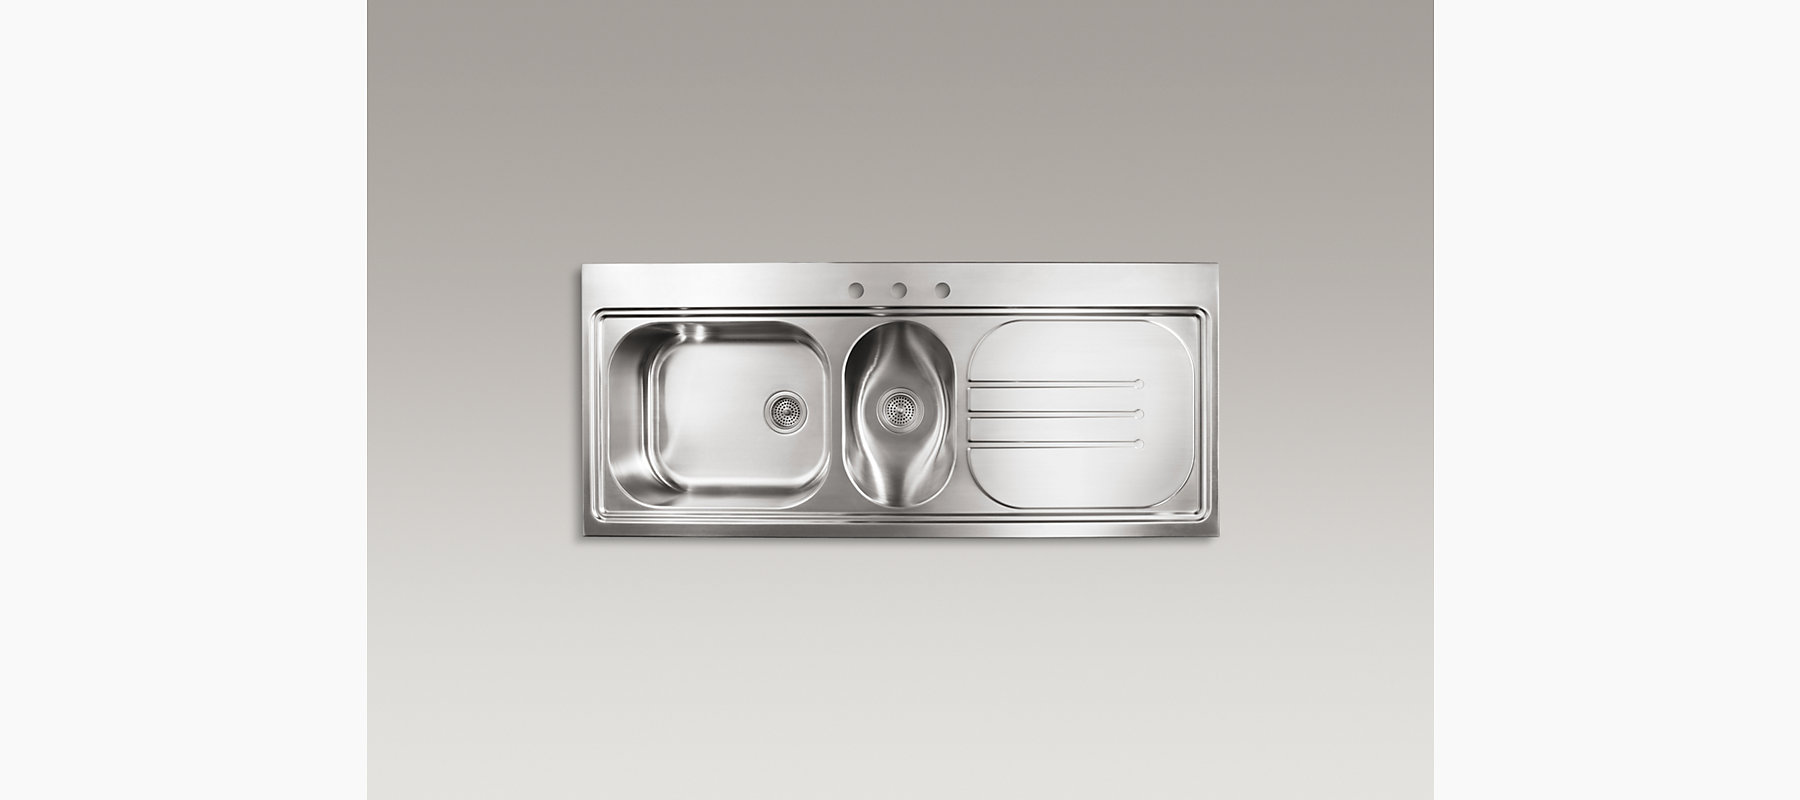 K 3326r 3 Pro Taskcenter Double Bowl Sink With Right